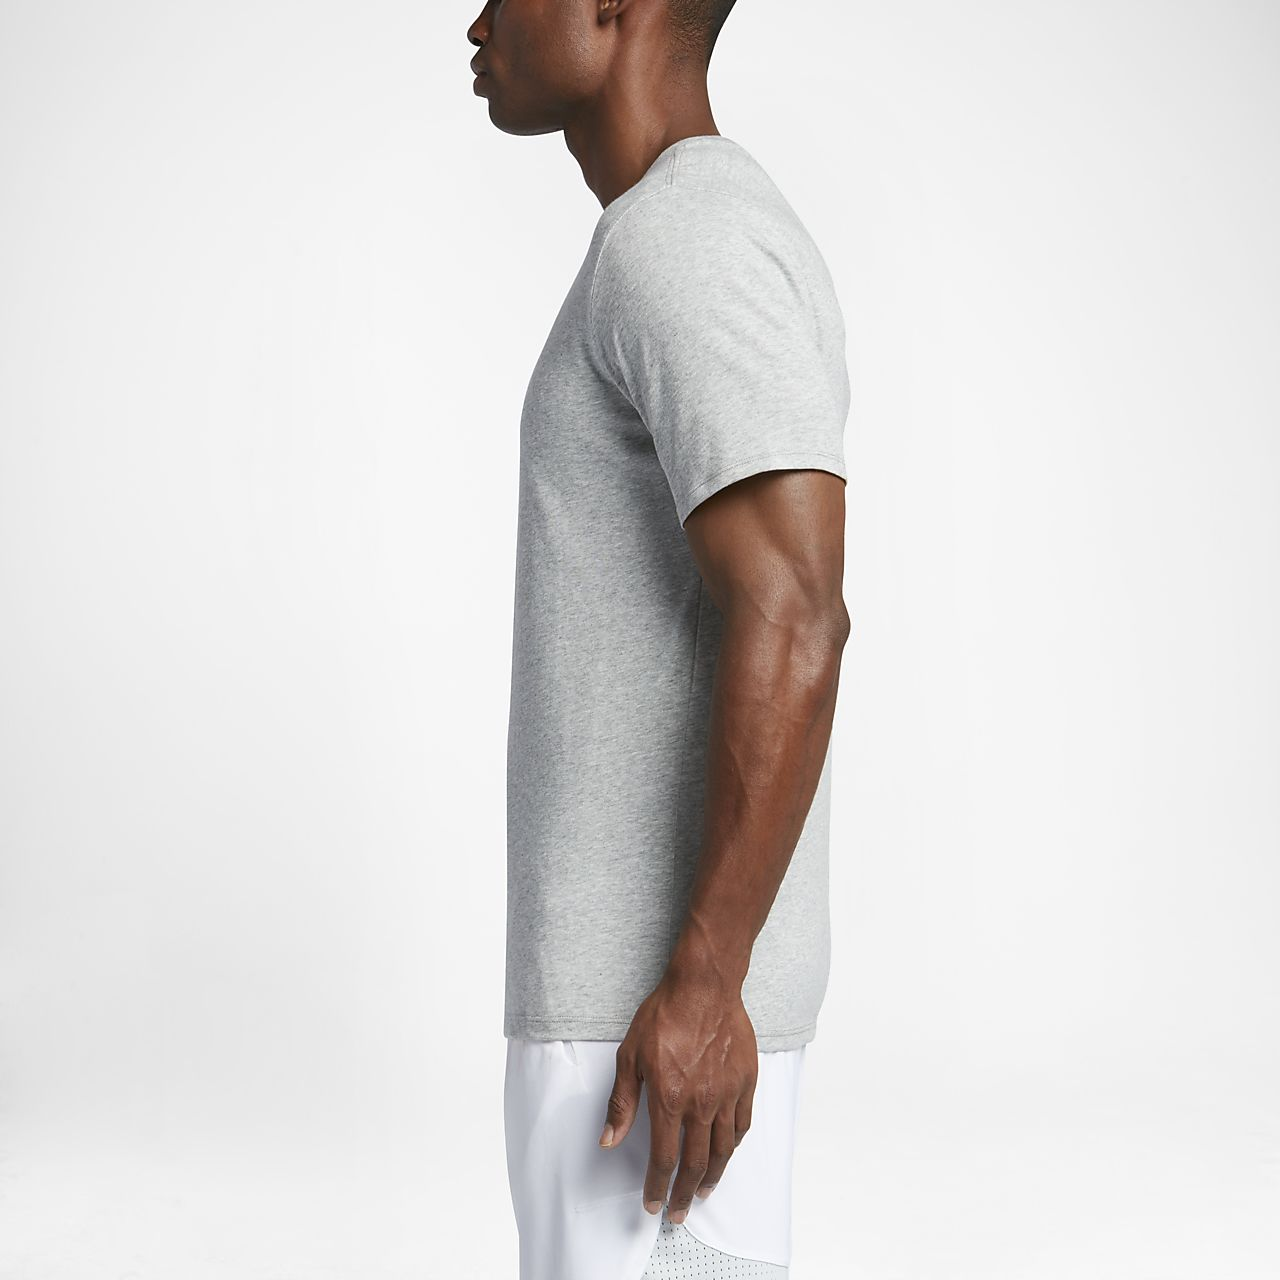 e3a9a2c5 Nike Dri-FIT Men's Training Short-Sleeve T-Shirt. Nike.com EG